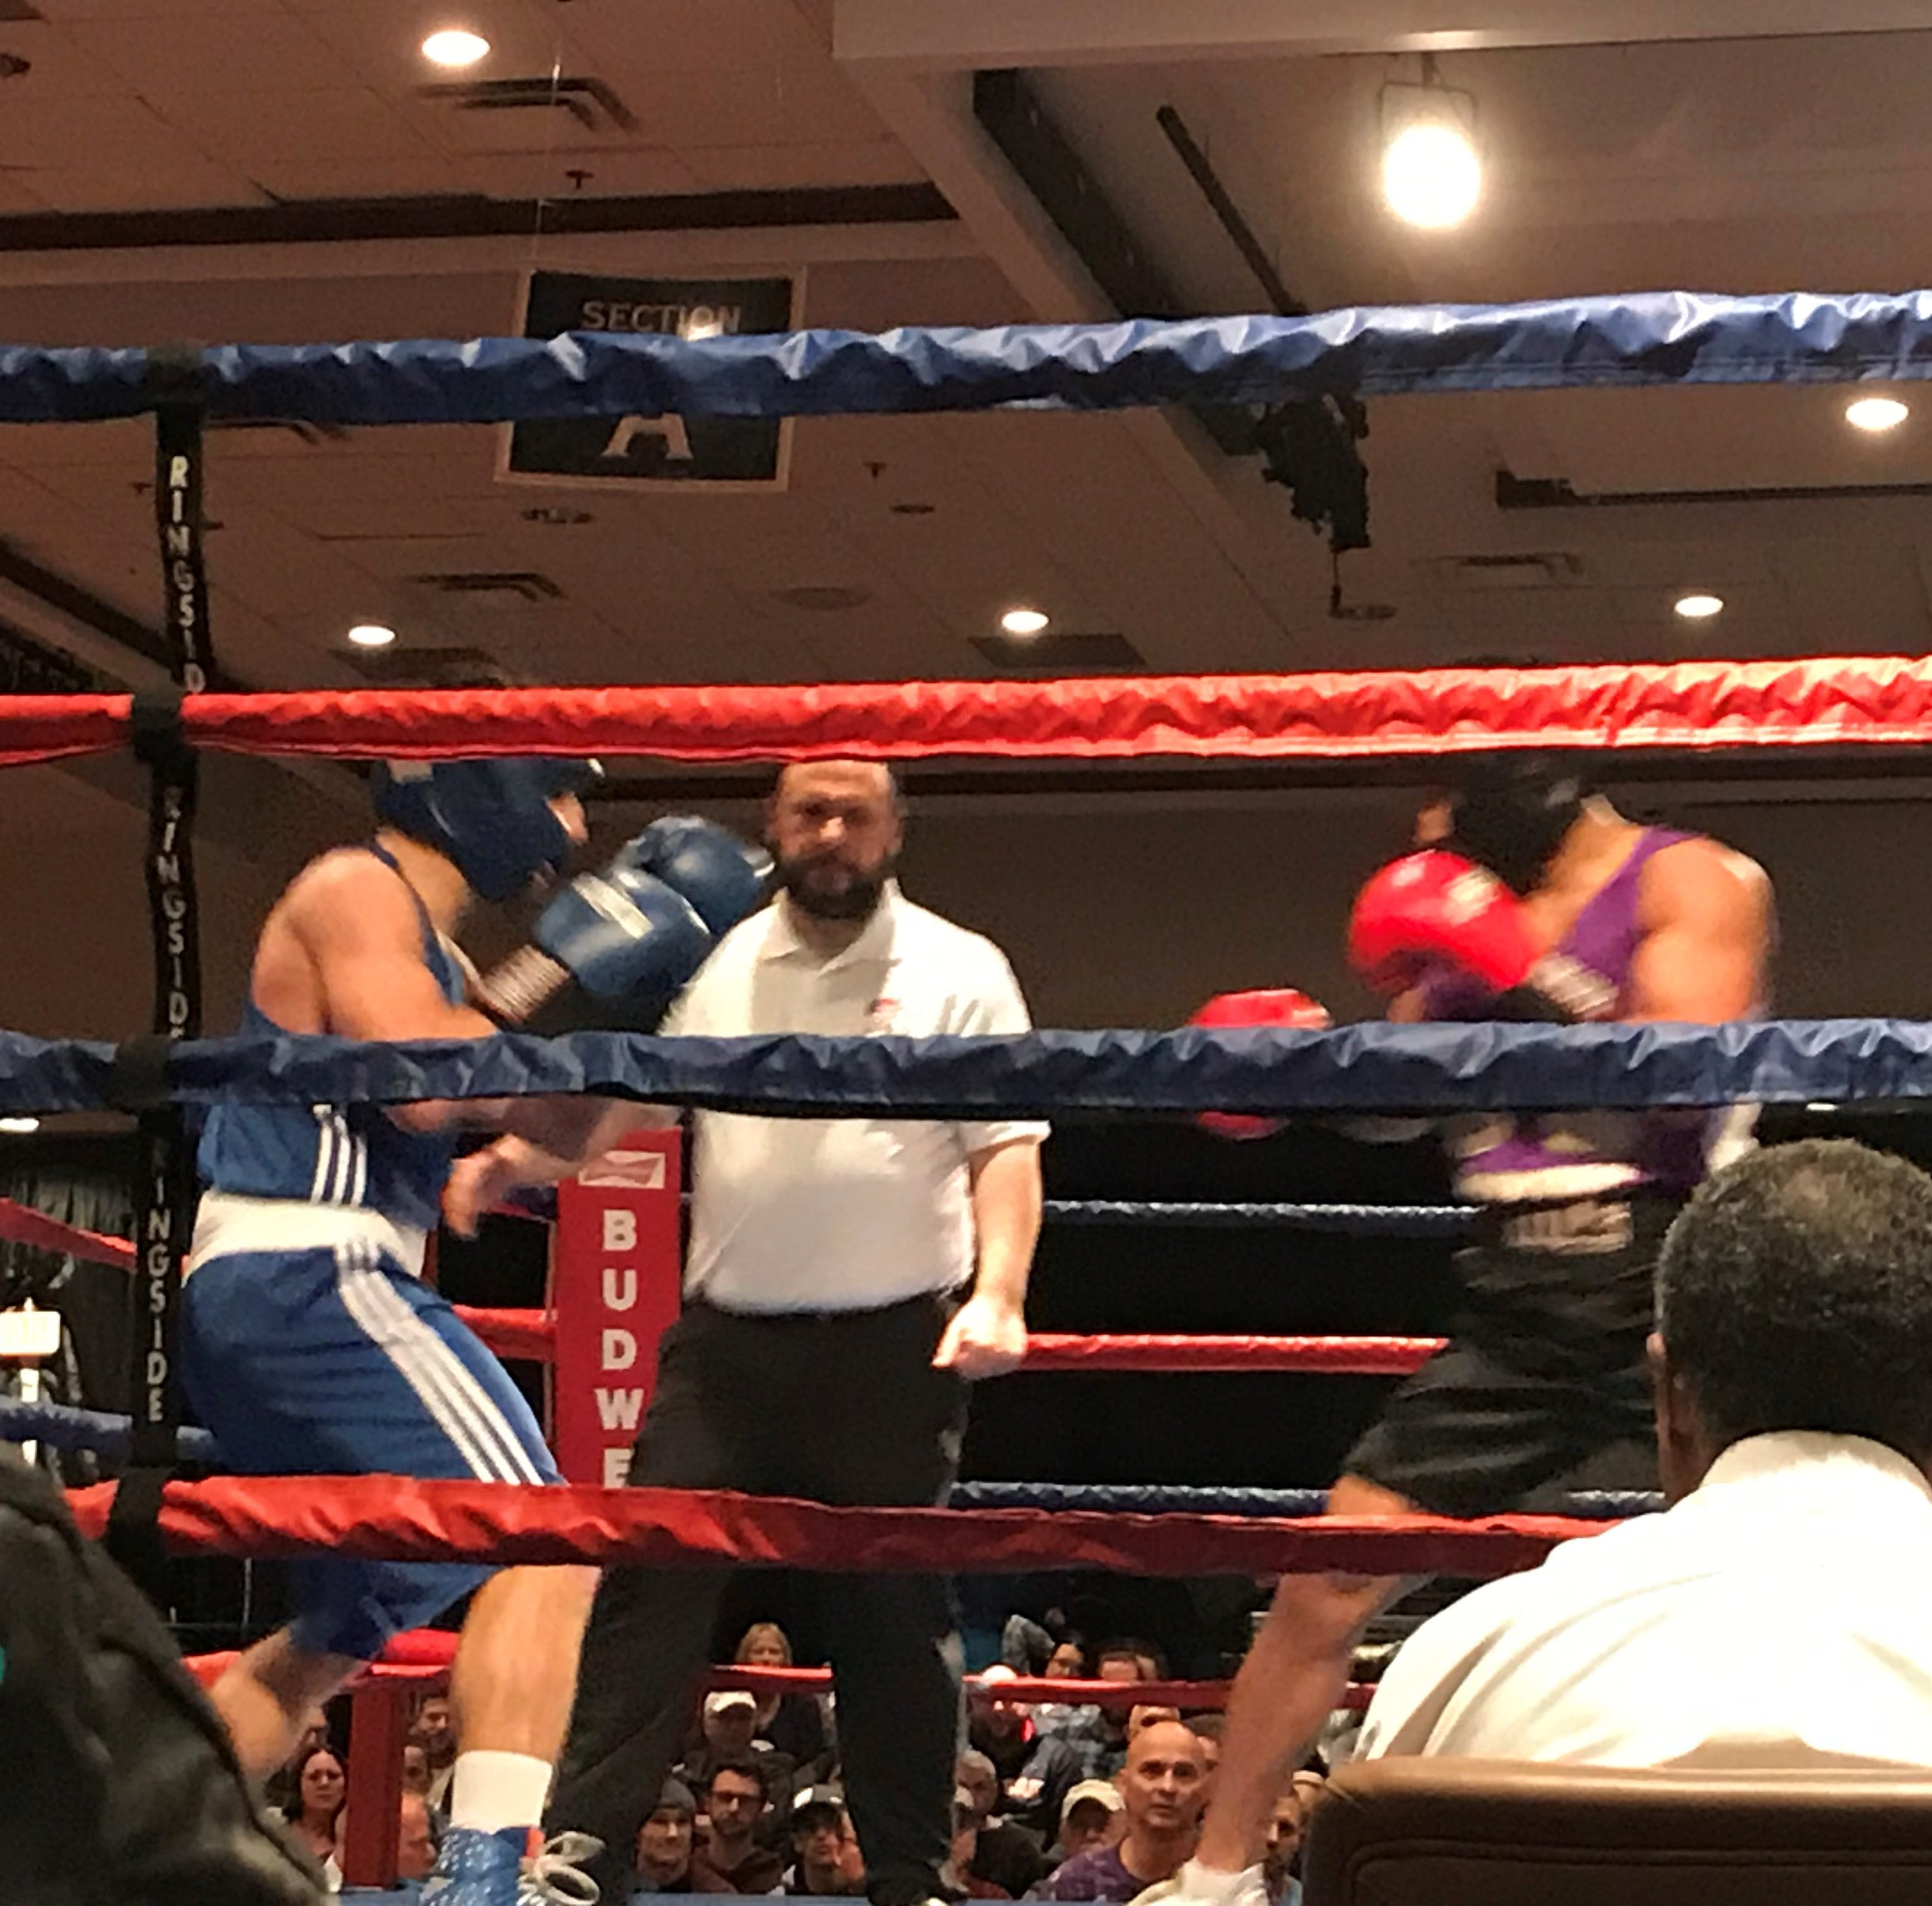 Nevada's Ault wins title at Collegiate National Boxing Championships